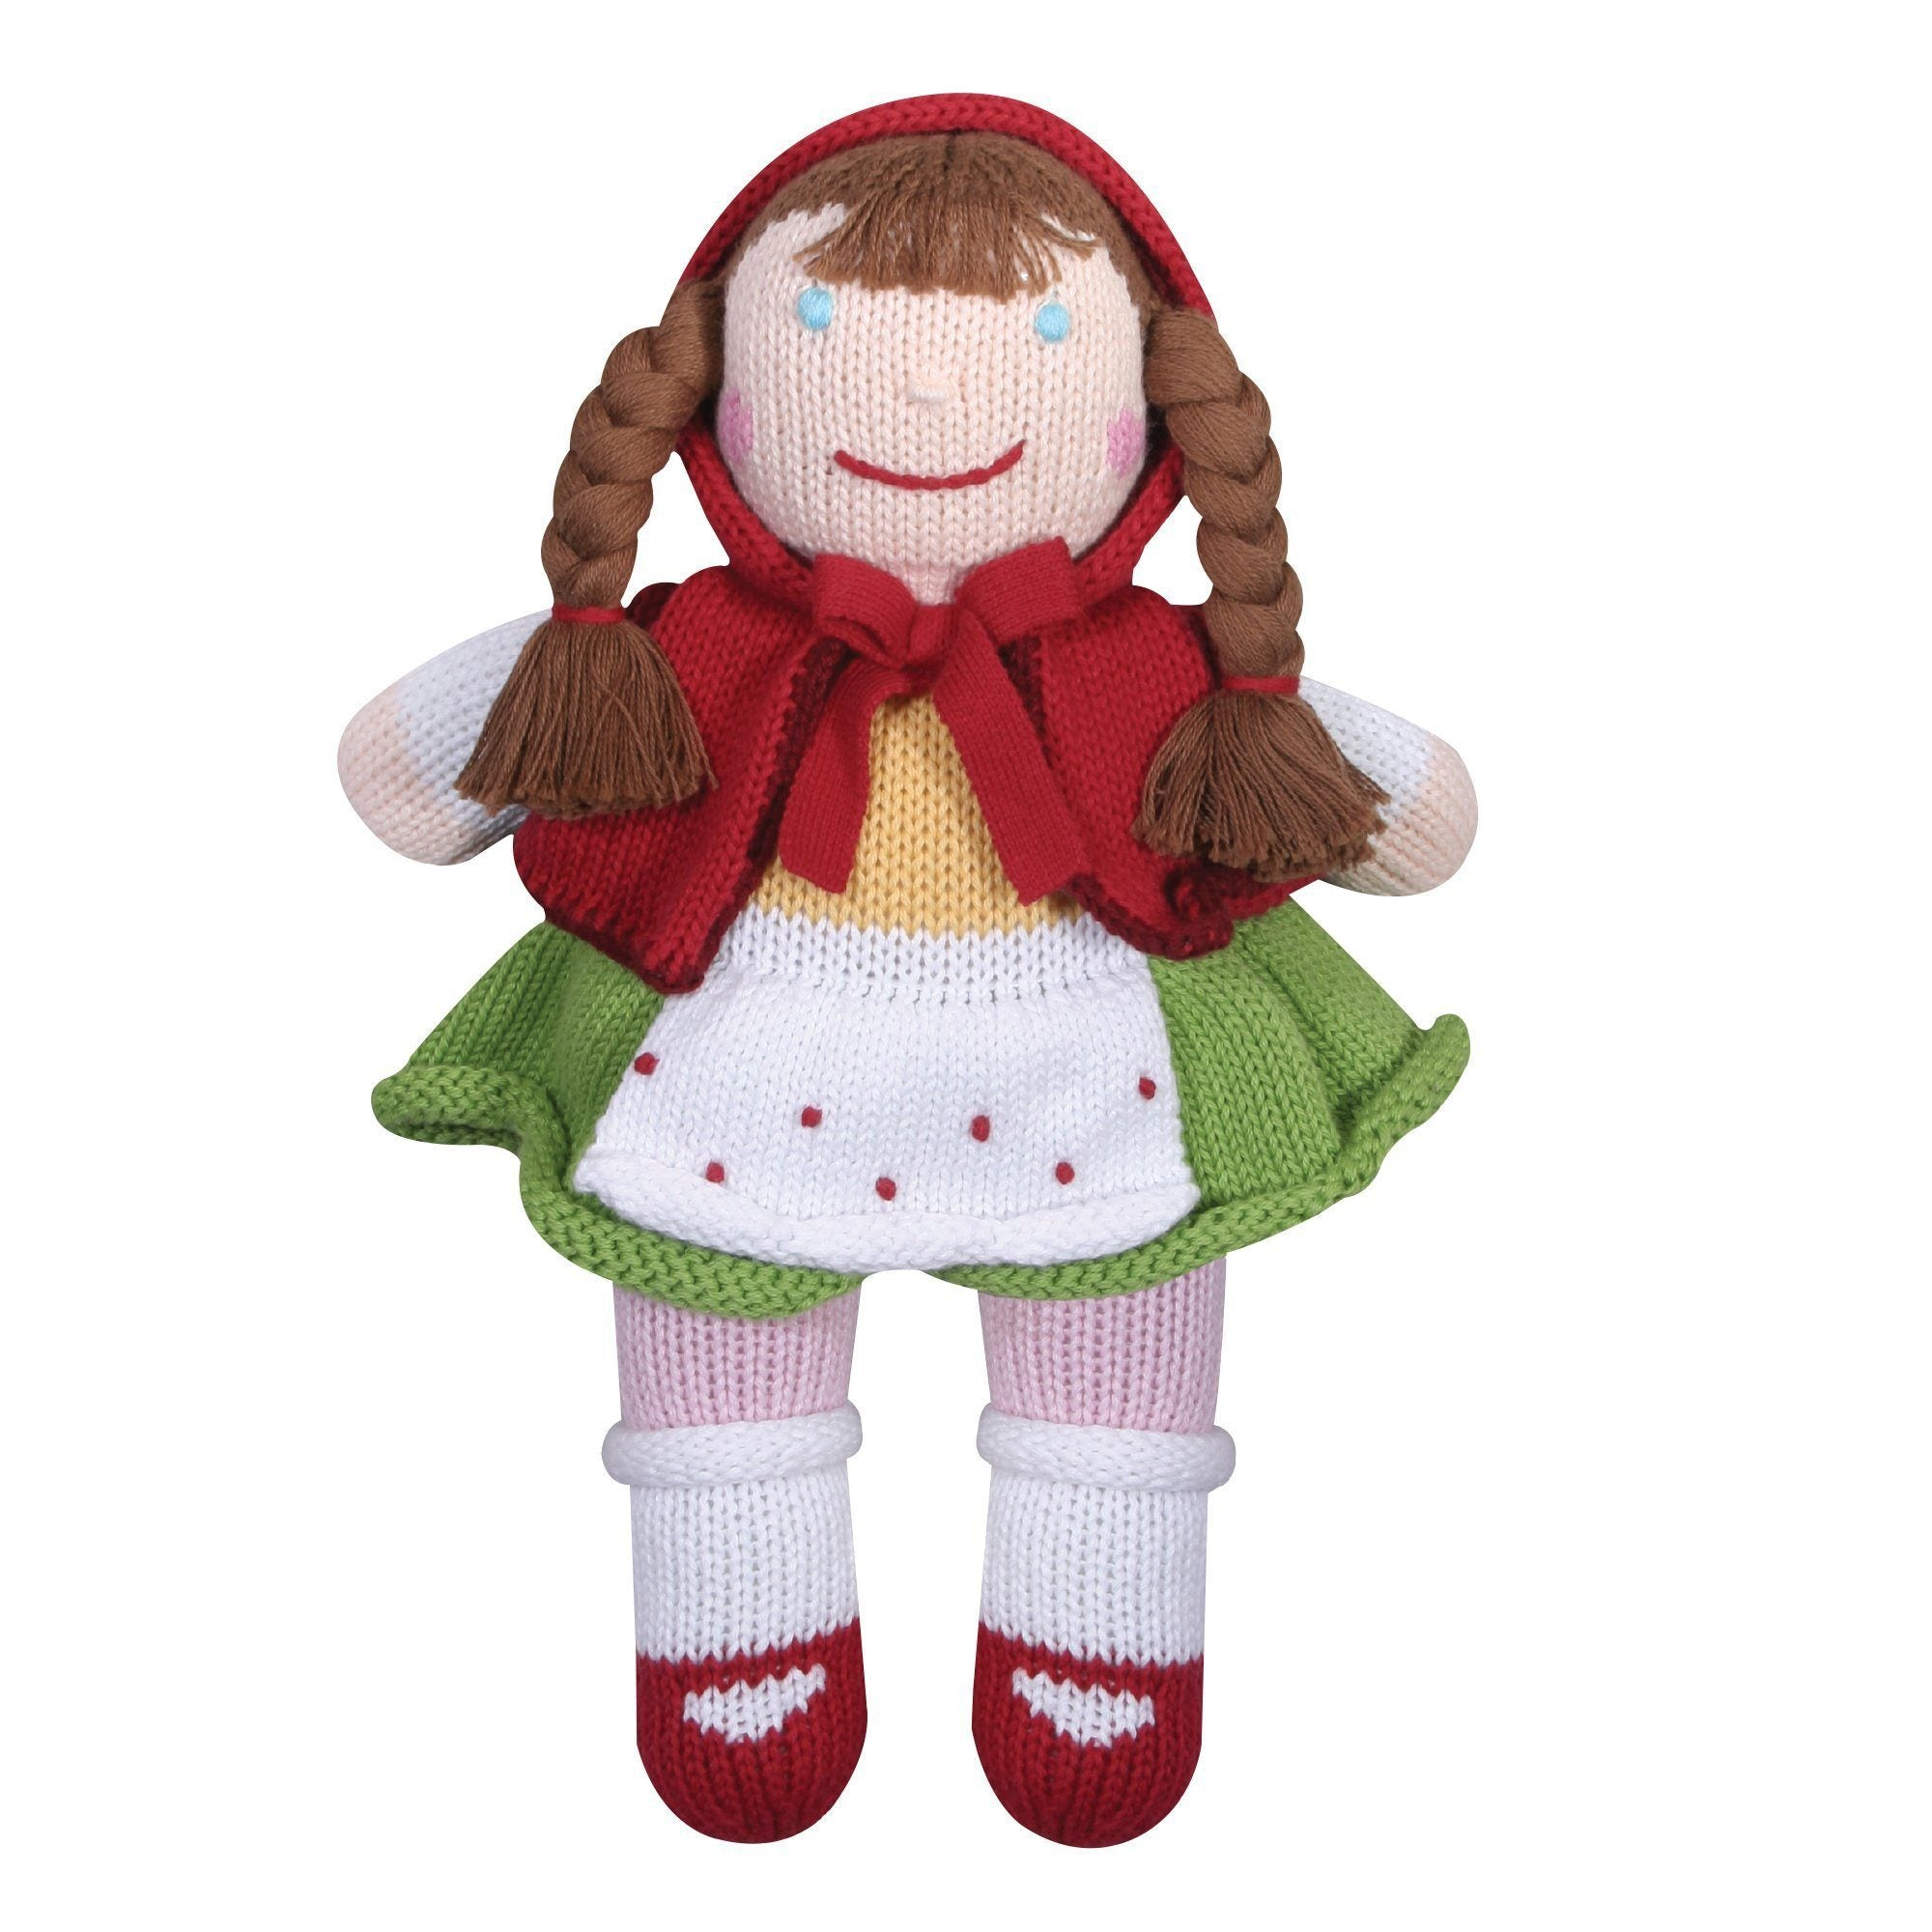 Red Riding Hood doll Zubels